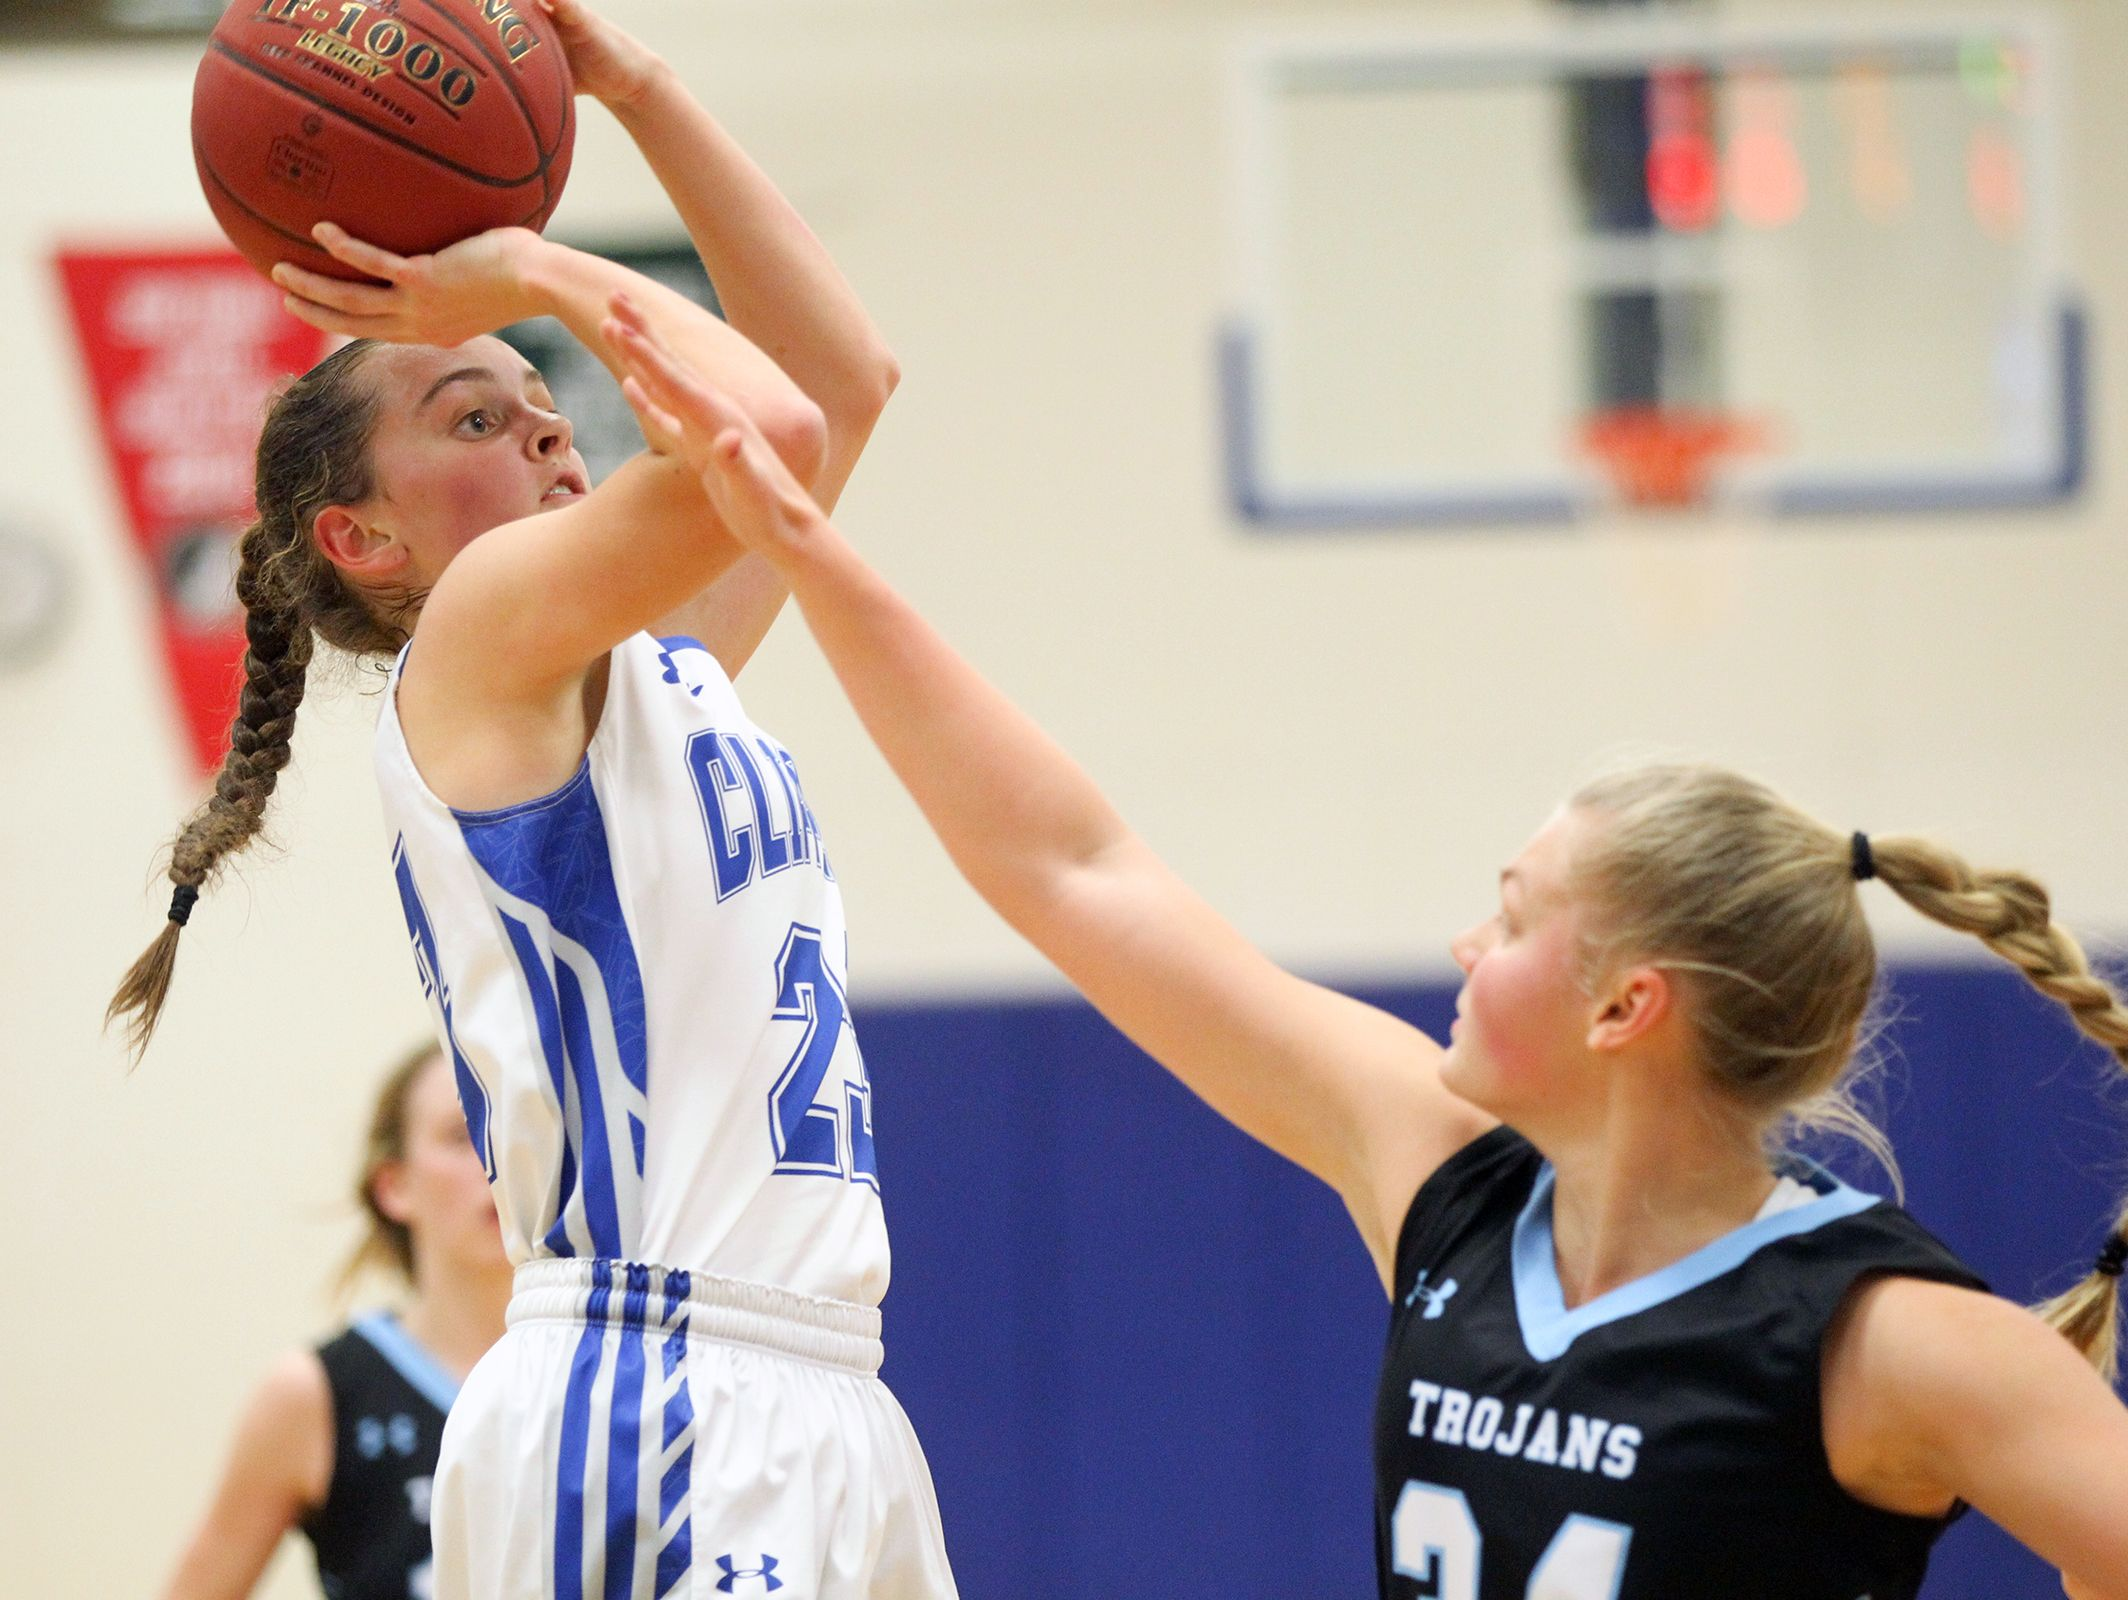 Clear Creek Amana's Karsyn Stratton takes a shot during the Clippers' game against South Tama in Tiffin on Monday, Dec. 19, 2016.